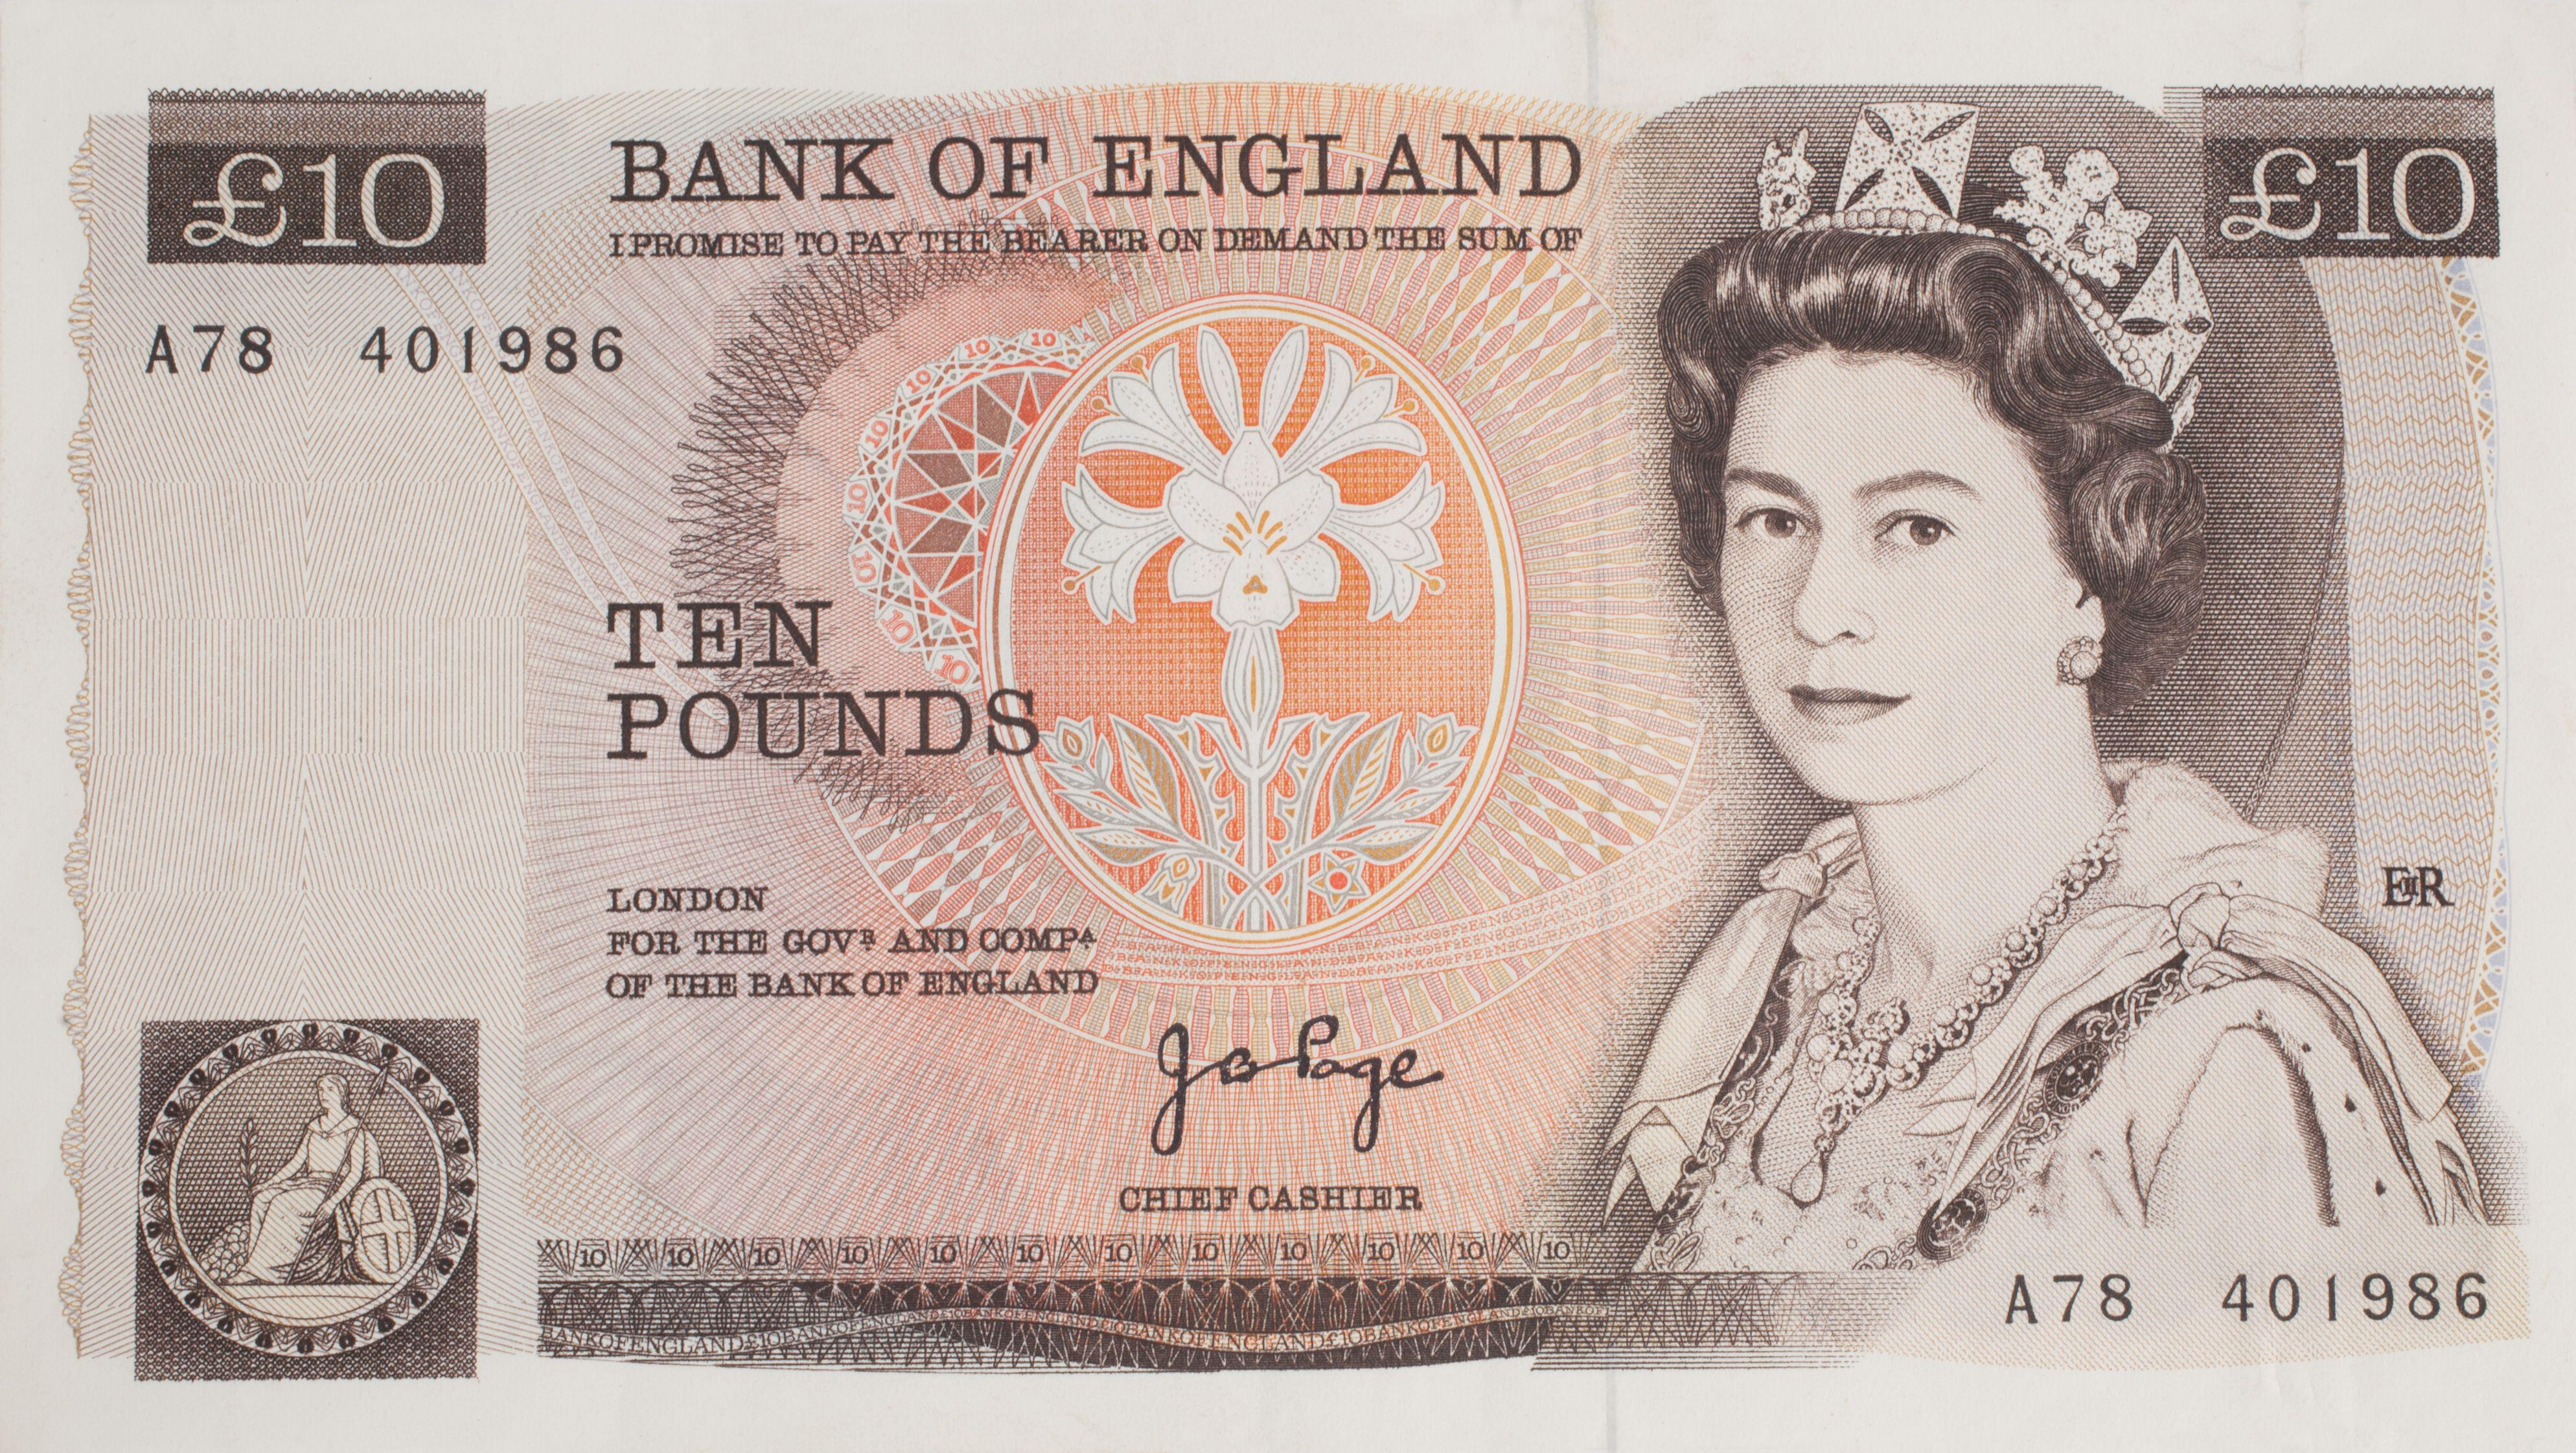 The rare banknote could sell for £26,000